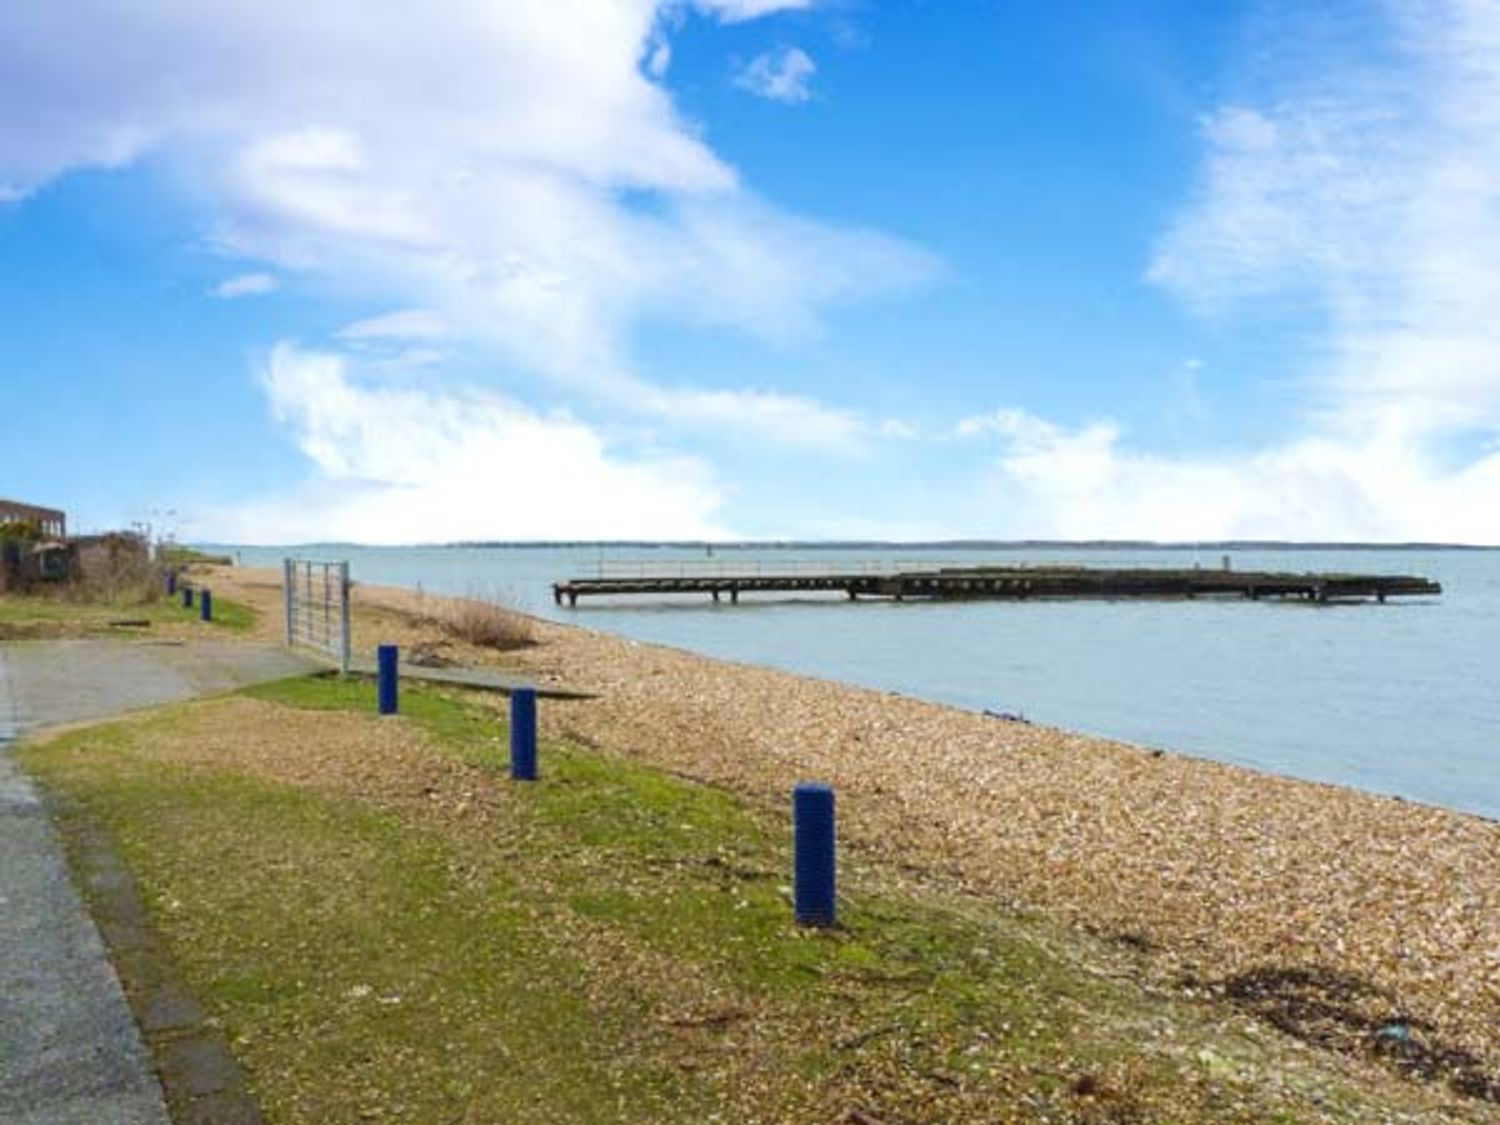 North West Sea View No. 3, Isle of Wight